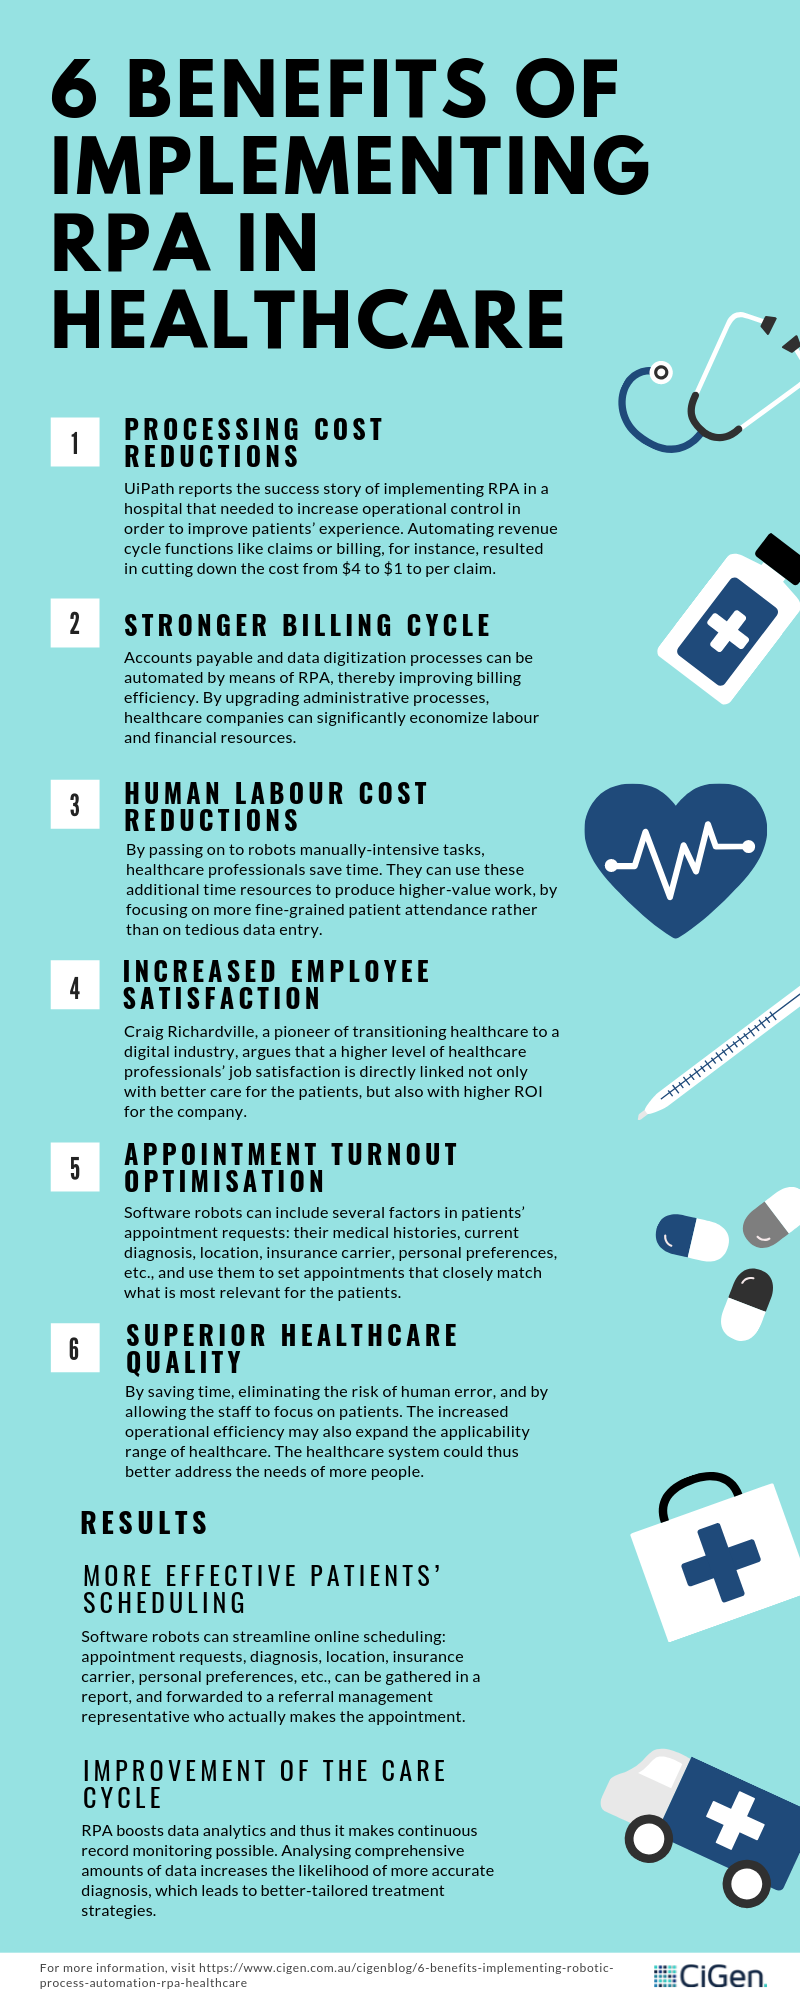 CiGen-robotic-process-automation-Australia-6-Benefits-of-Implementing-RPA-in-Healthcare-infographic.png